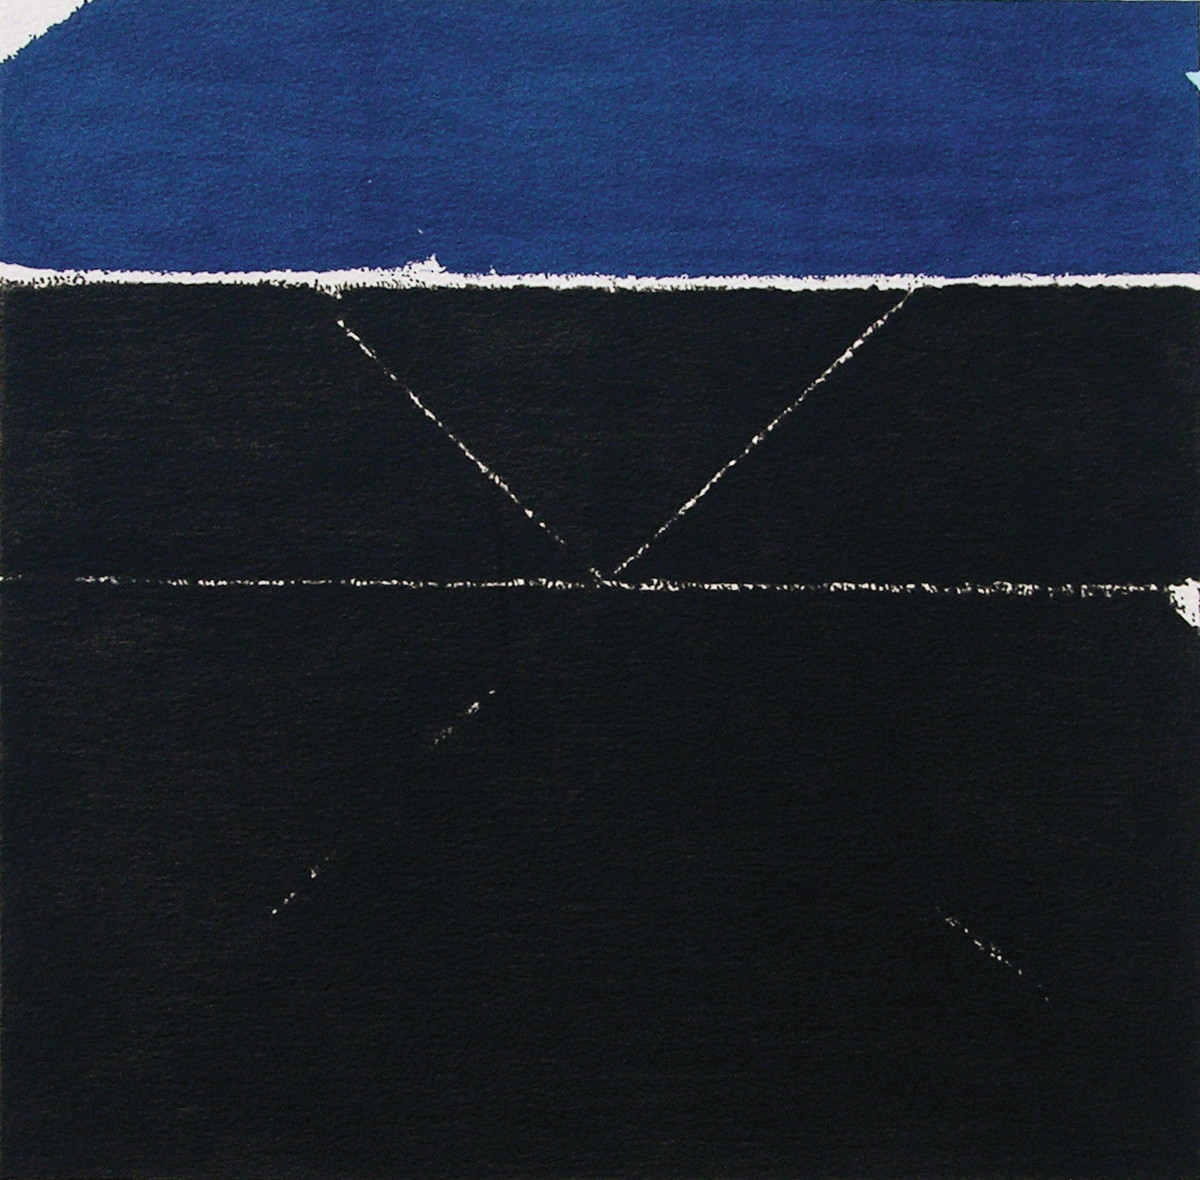 Prakriti by S H Raza, Geometrical Serigraph, Serigraph on Paper, Black color